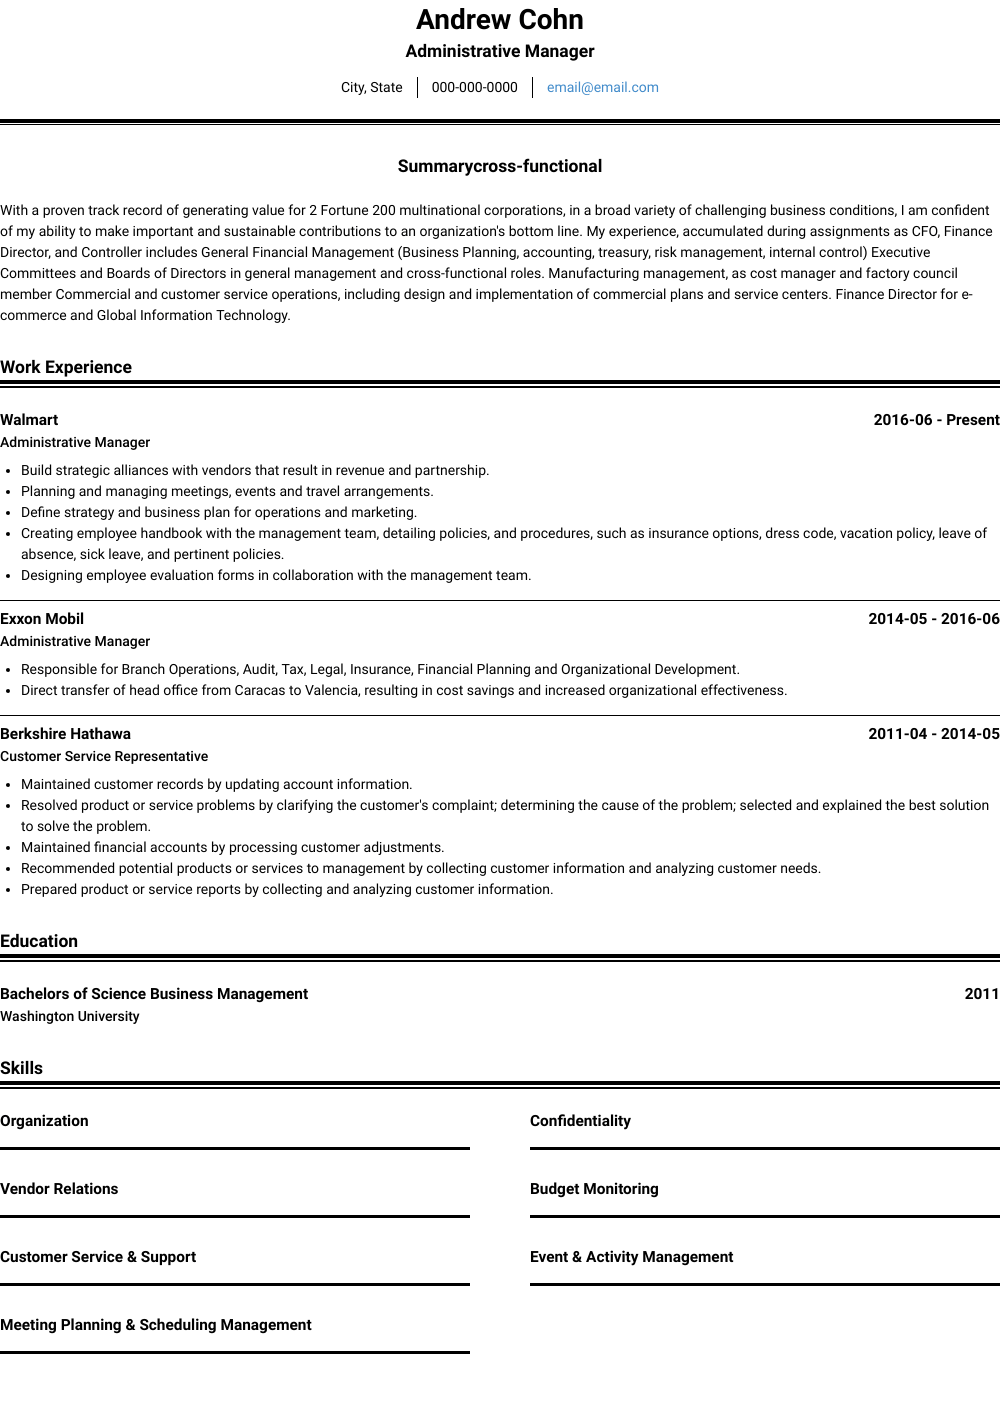 Administration Resume Sample